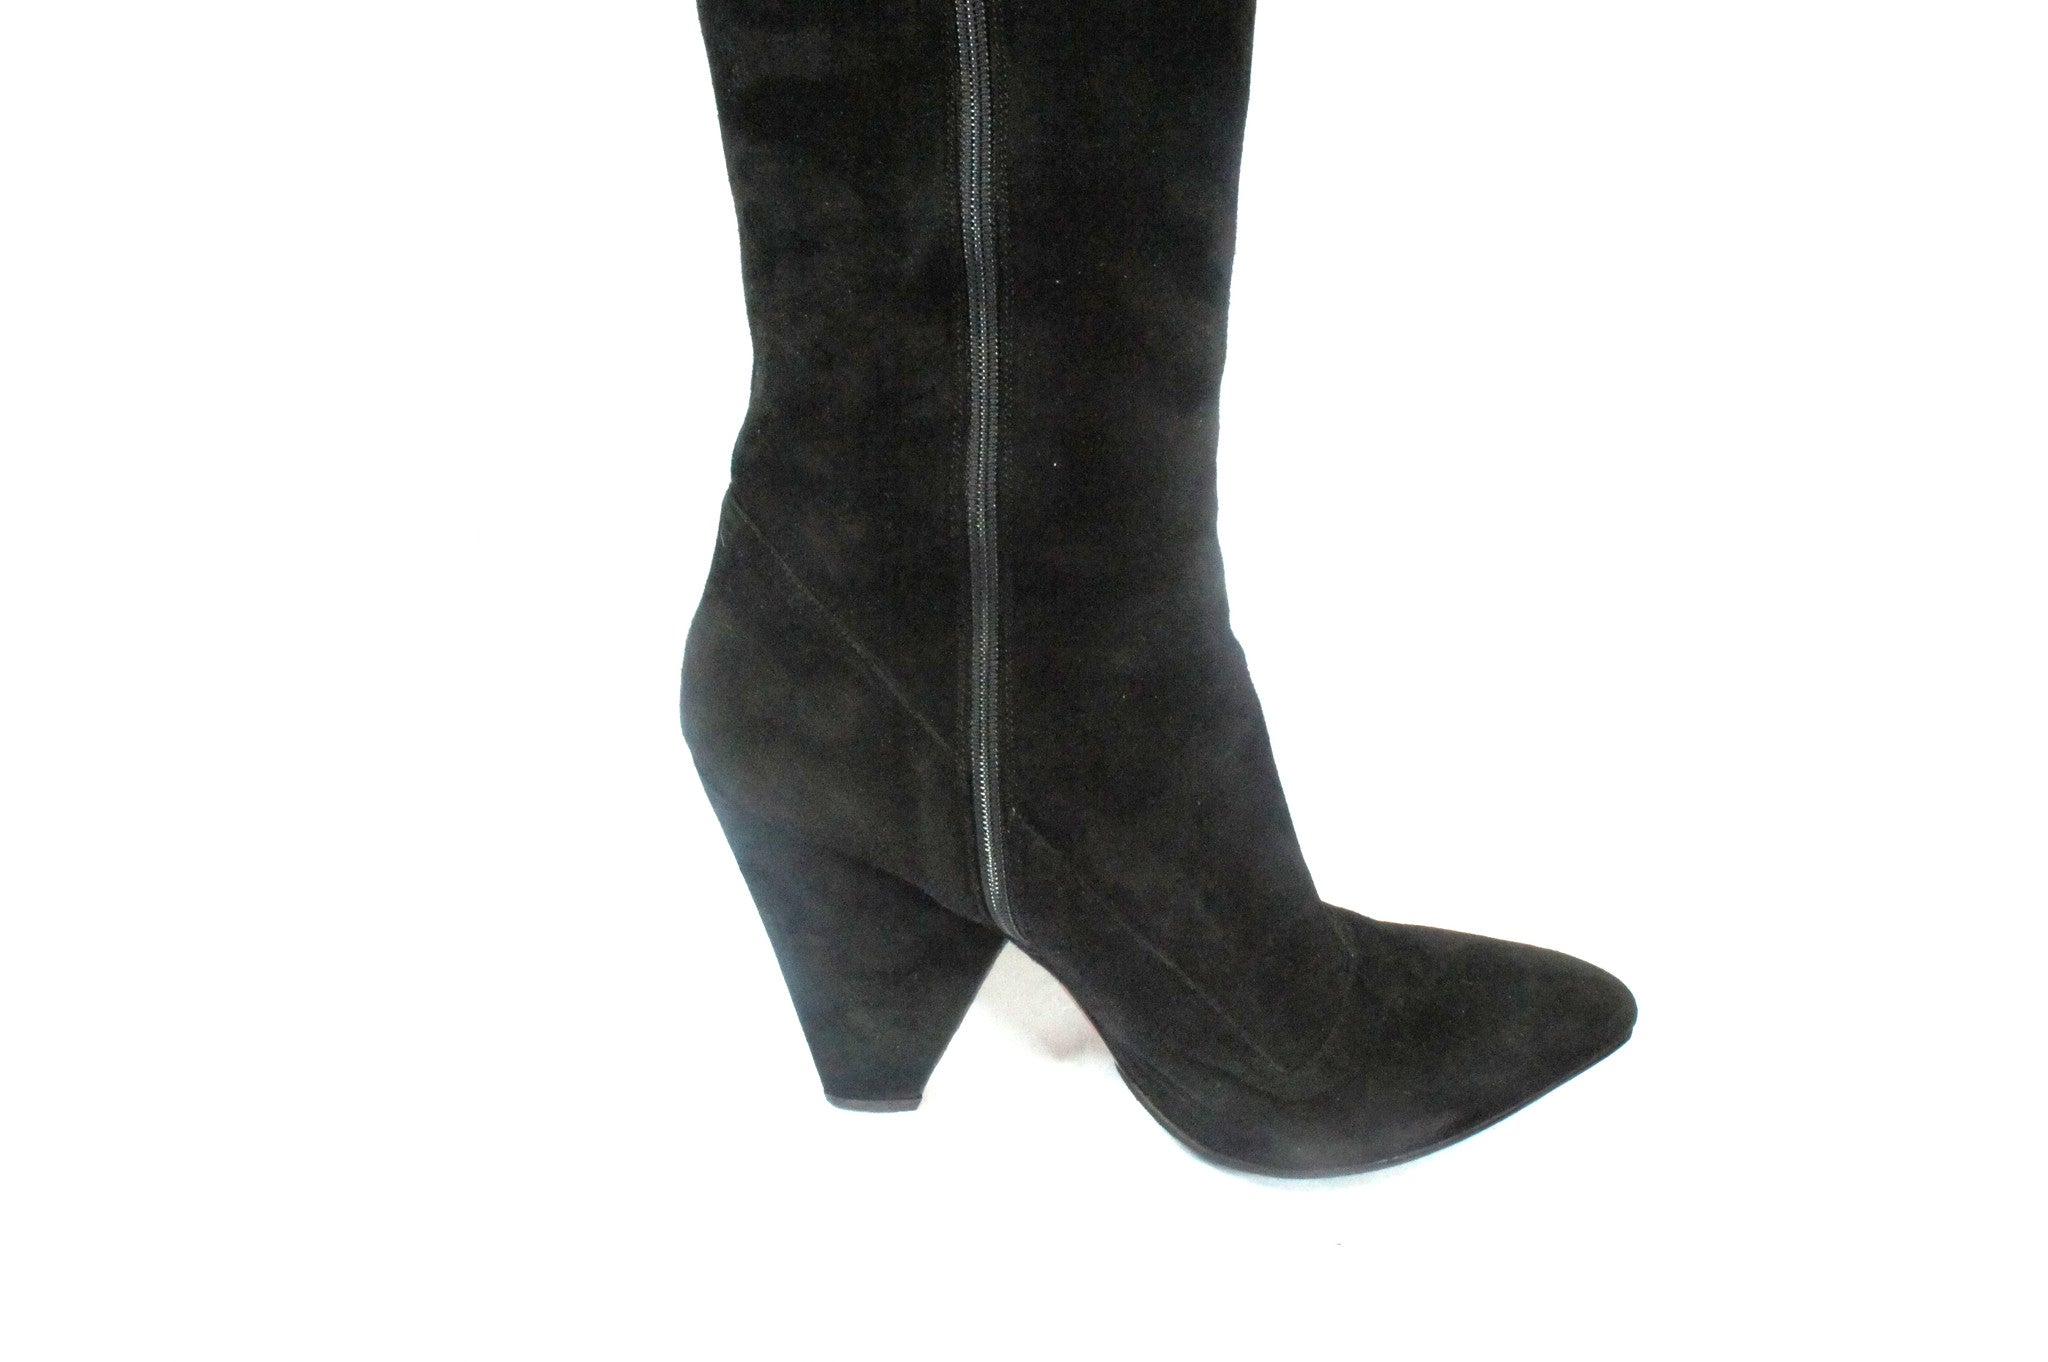 Alaia Black Suede Knee High Boots (Size 40) - Encore Consignment - 6